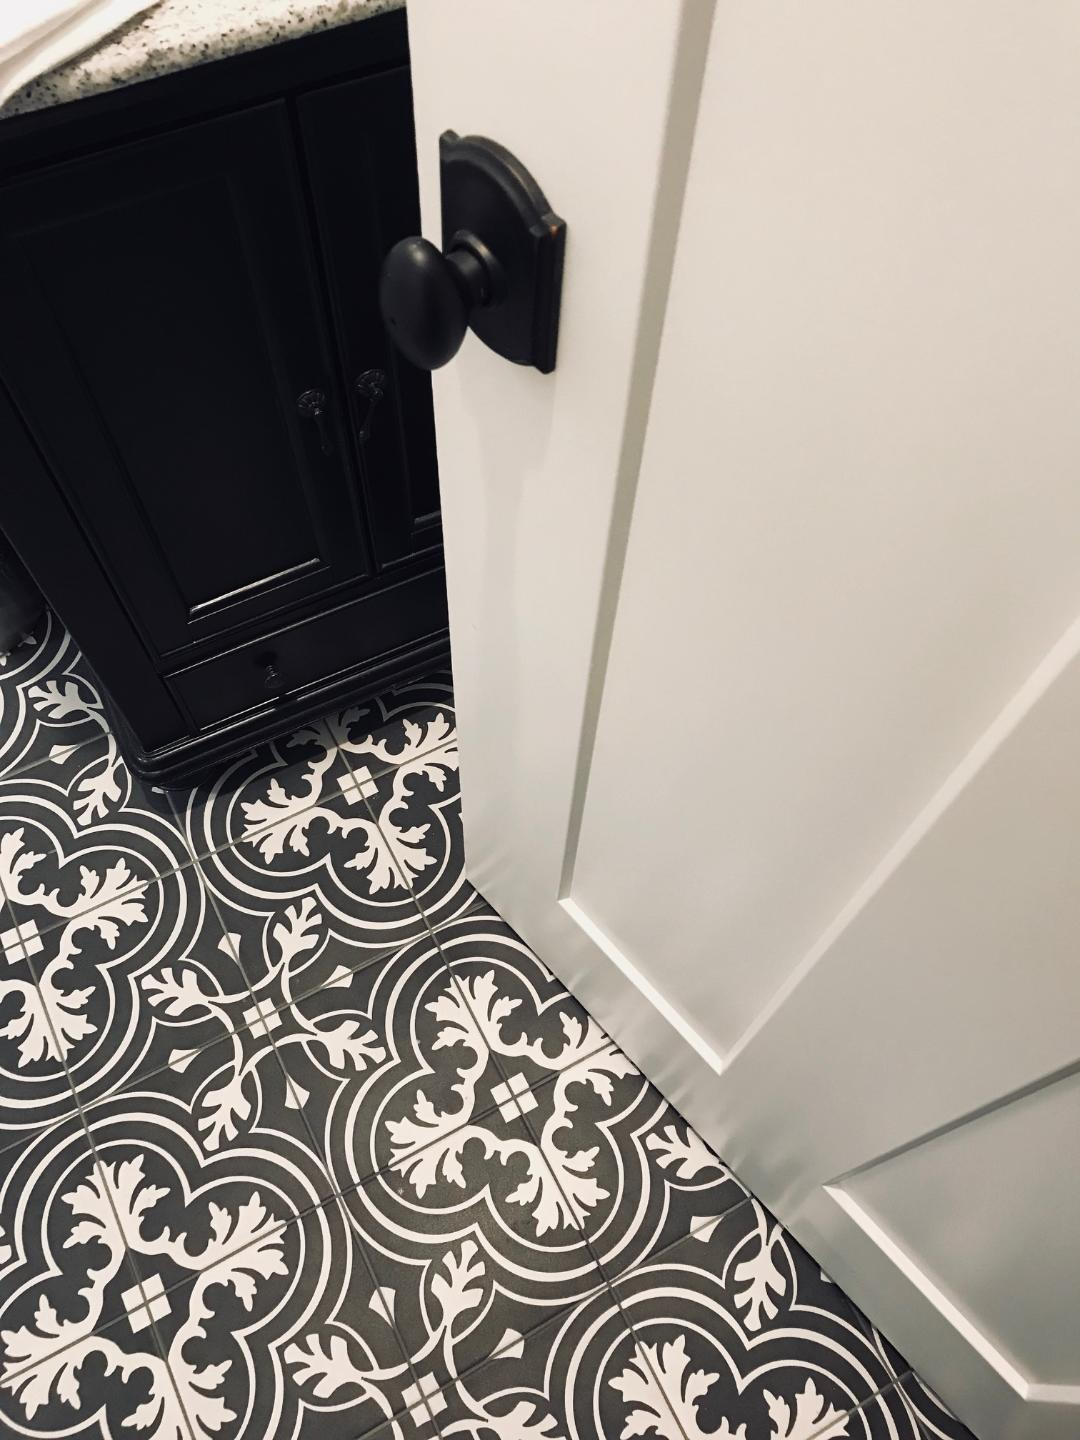 Black and white Tile: Black and while tile was popular and widely used throughout the 1920's. So, I decided to do something fun in the powder and laundry room. At first I was unsure about this bold print but now I wish we had more of it! I love how it turned out and we get a lot of compliments on it.